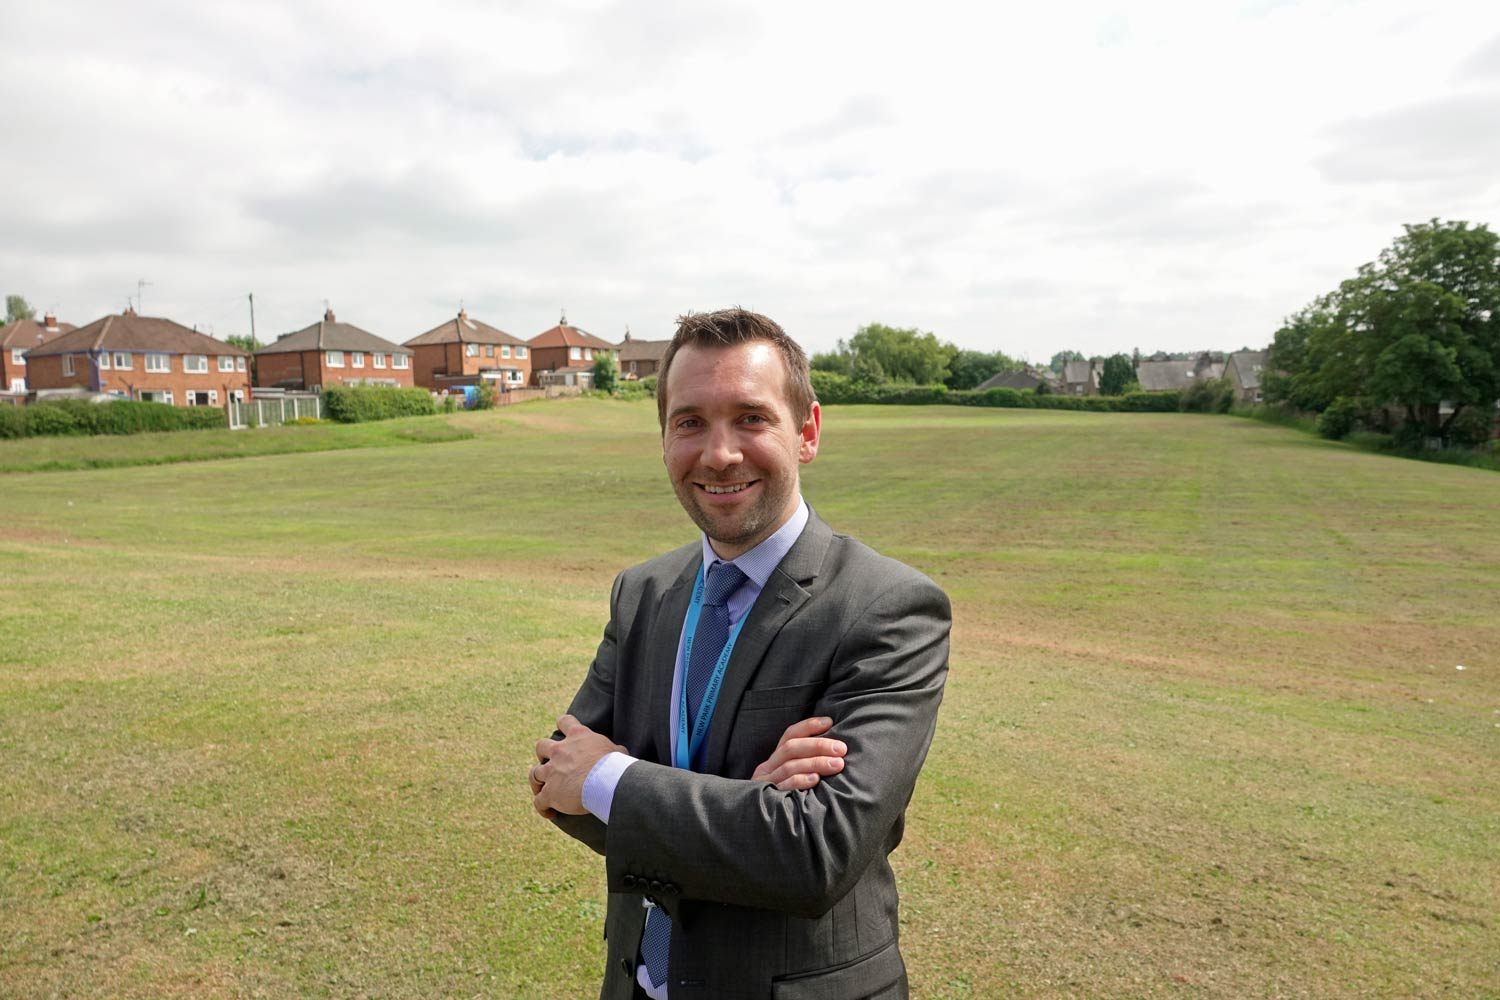 Robert Mold is the Headteacher at New Park Primary Academy